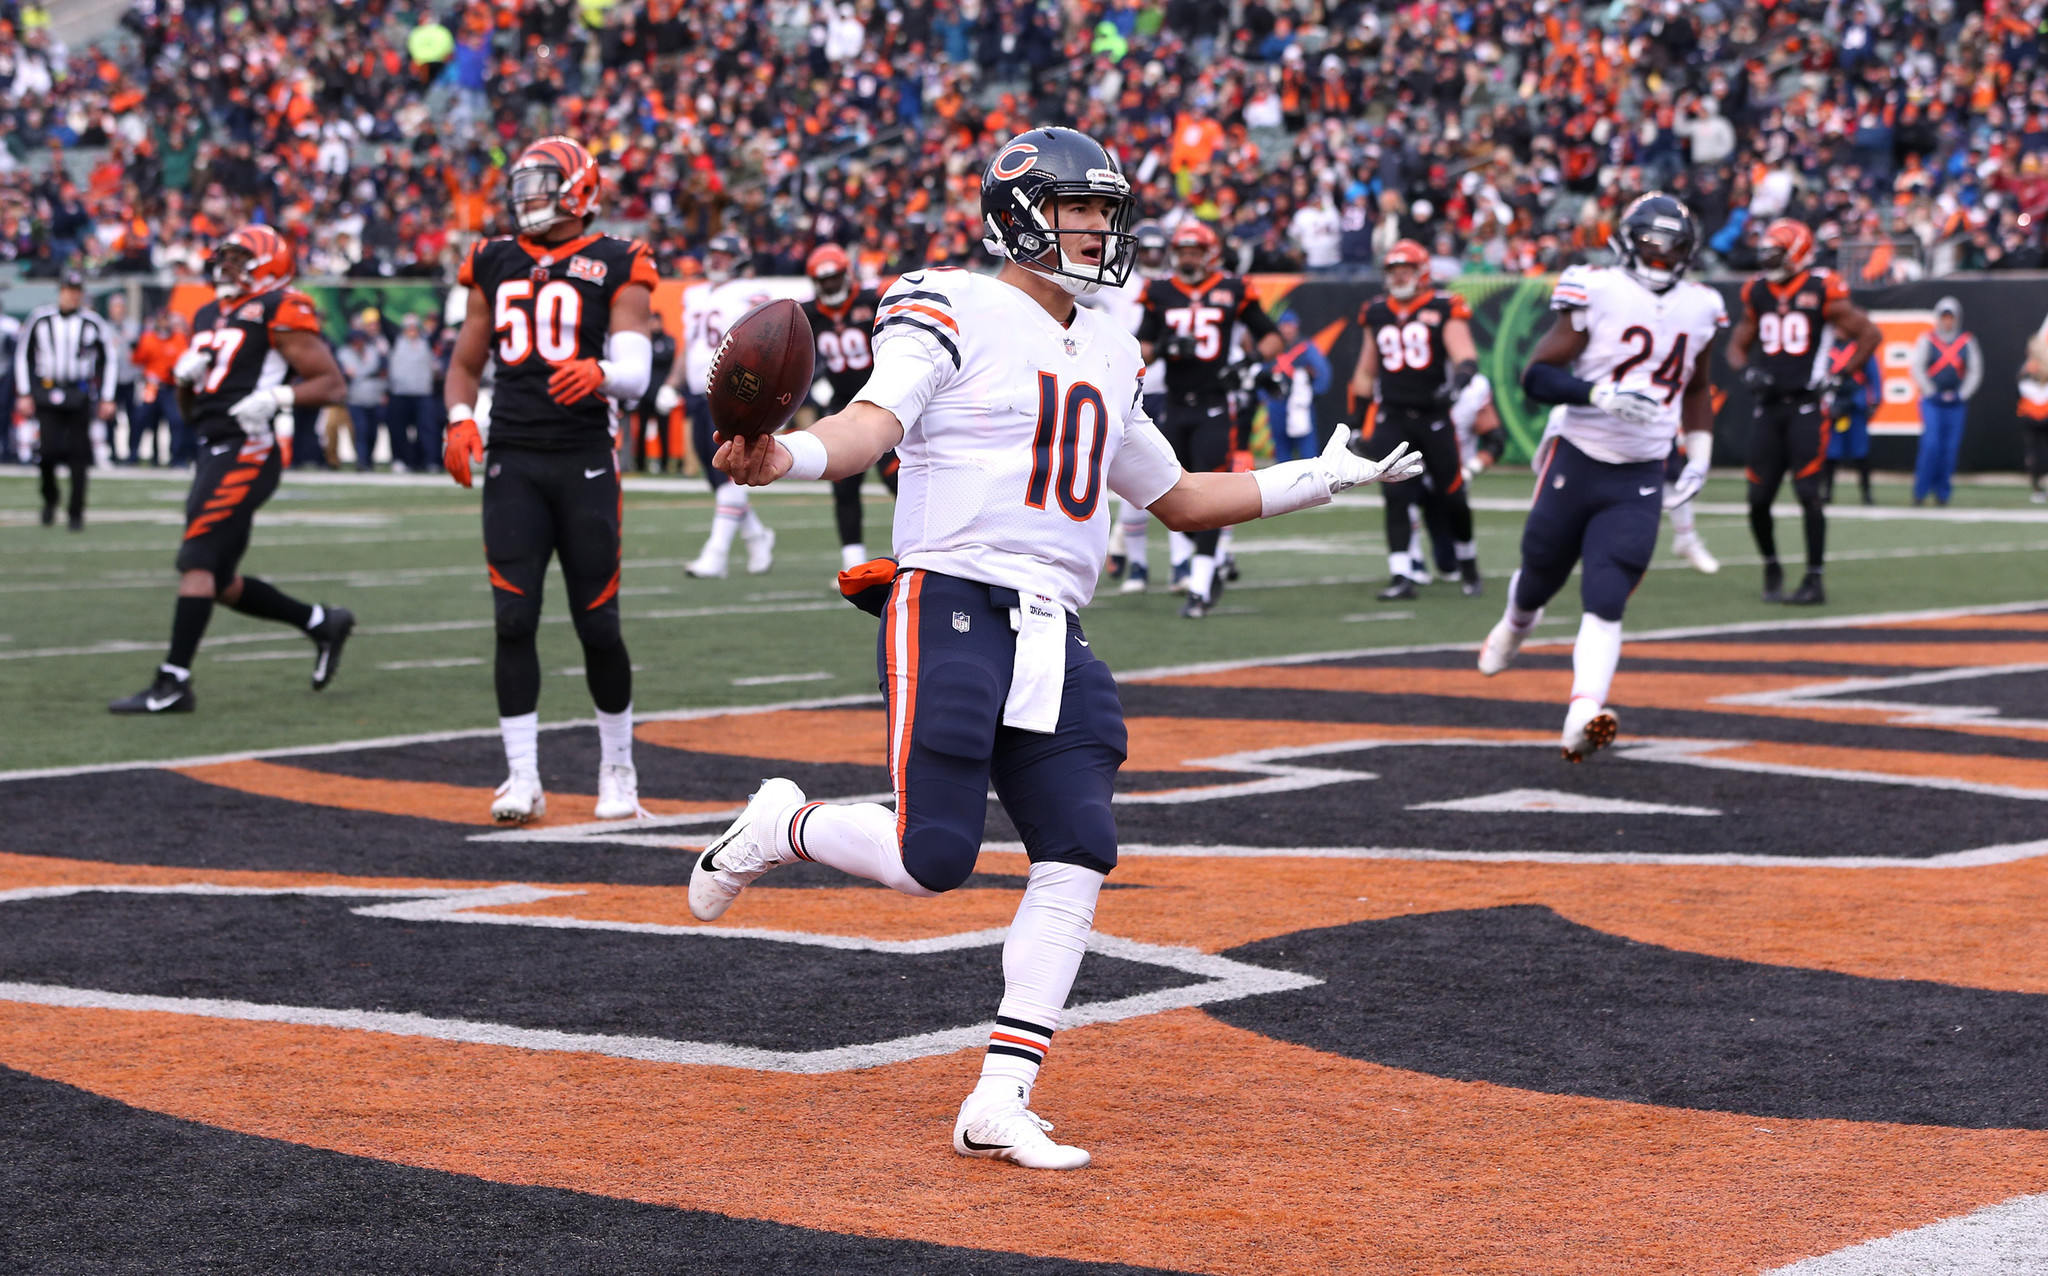 Ct-spt-bears-bengals-10-thoughts-mitch-trubisky-20171211